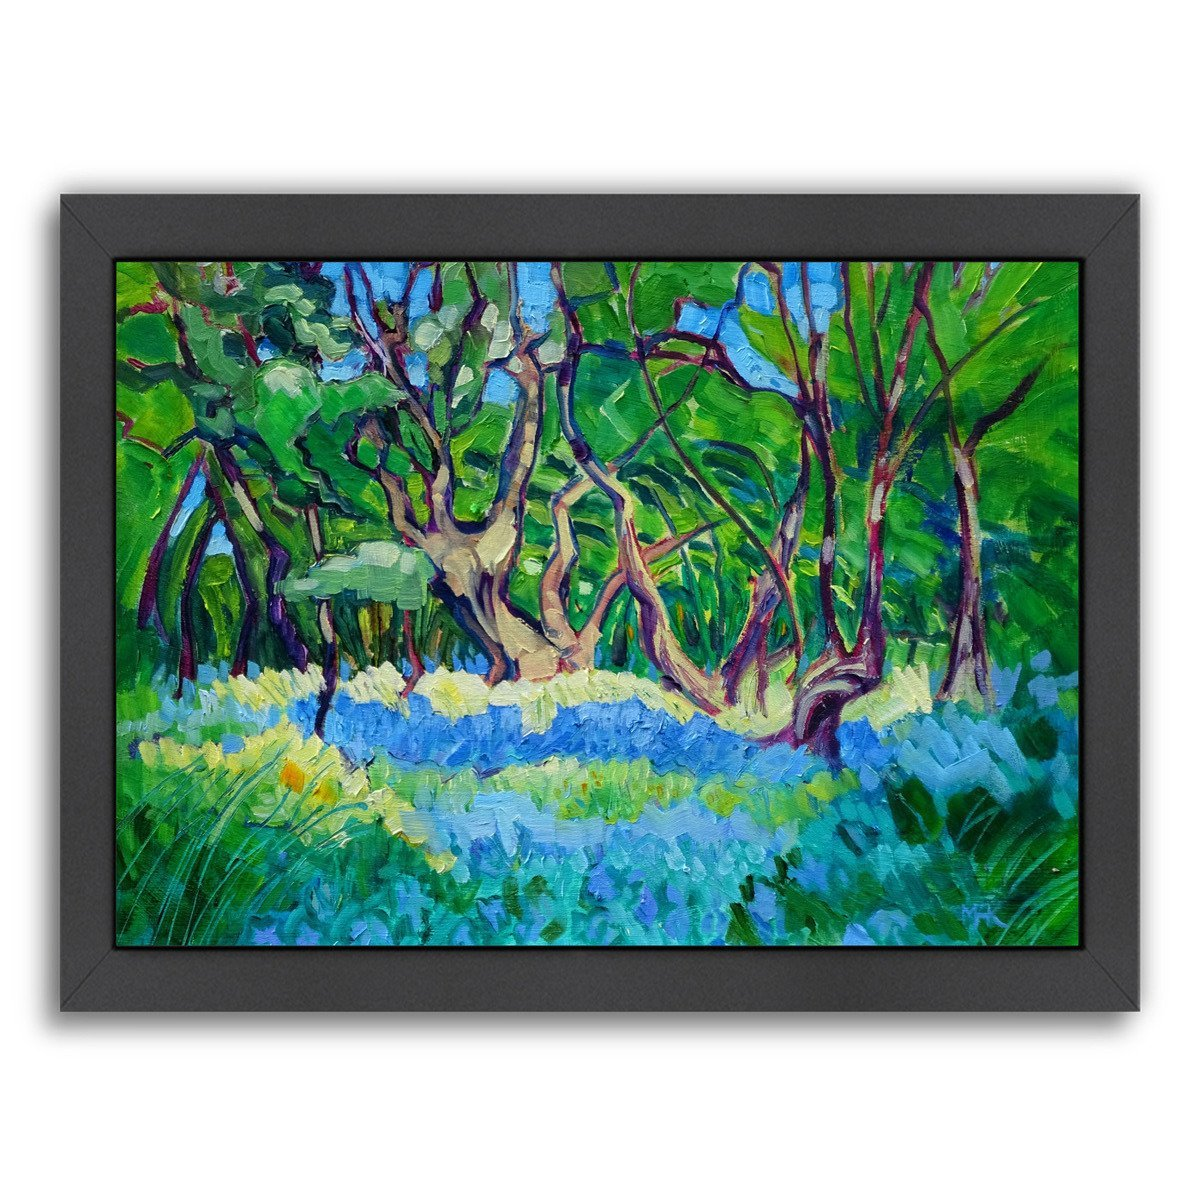 Bluebell Wood By Mary Kemp - Black Framed Print - Wall Art - Americanflat